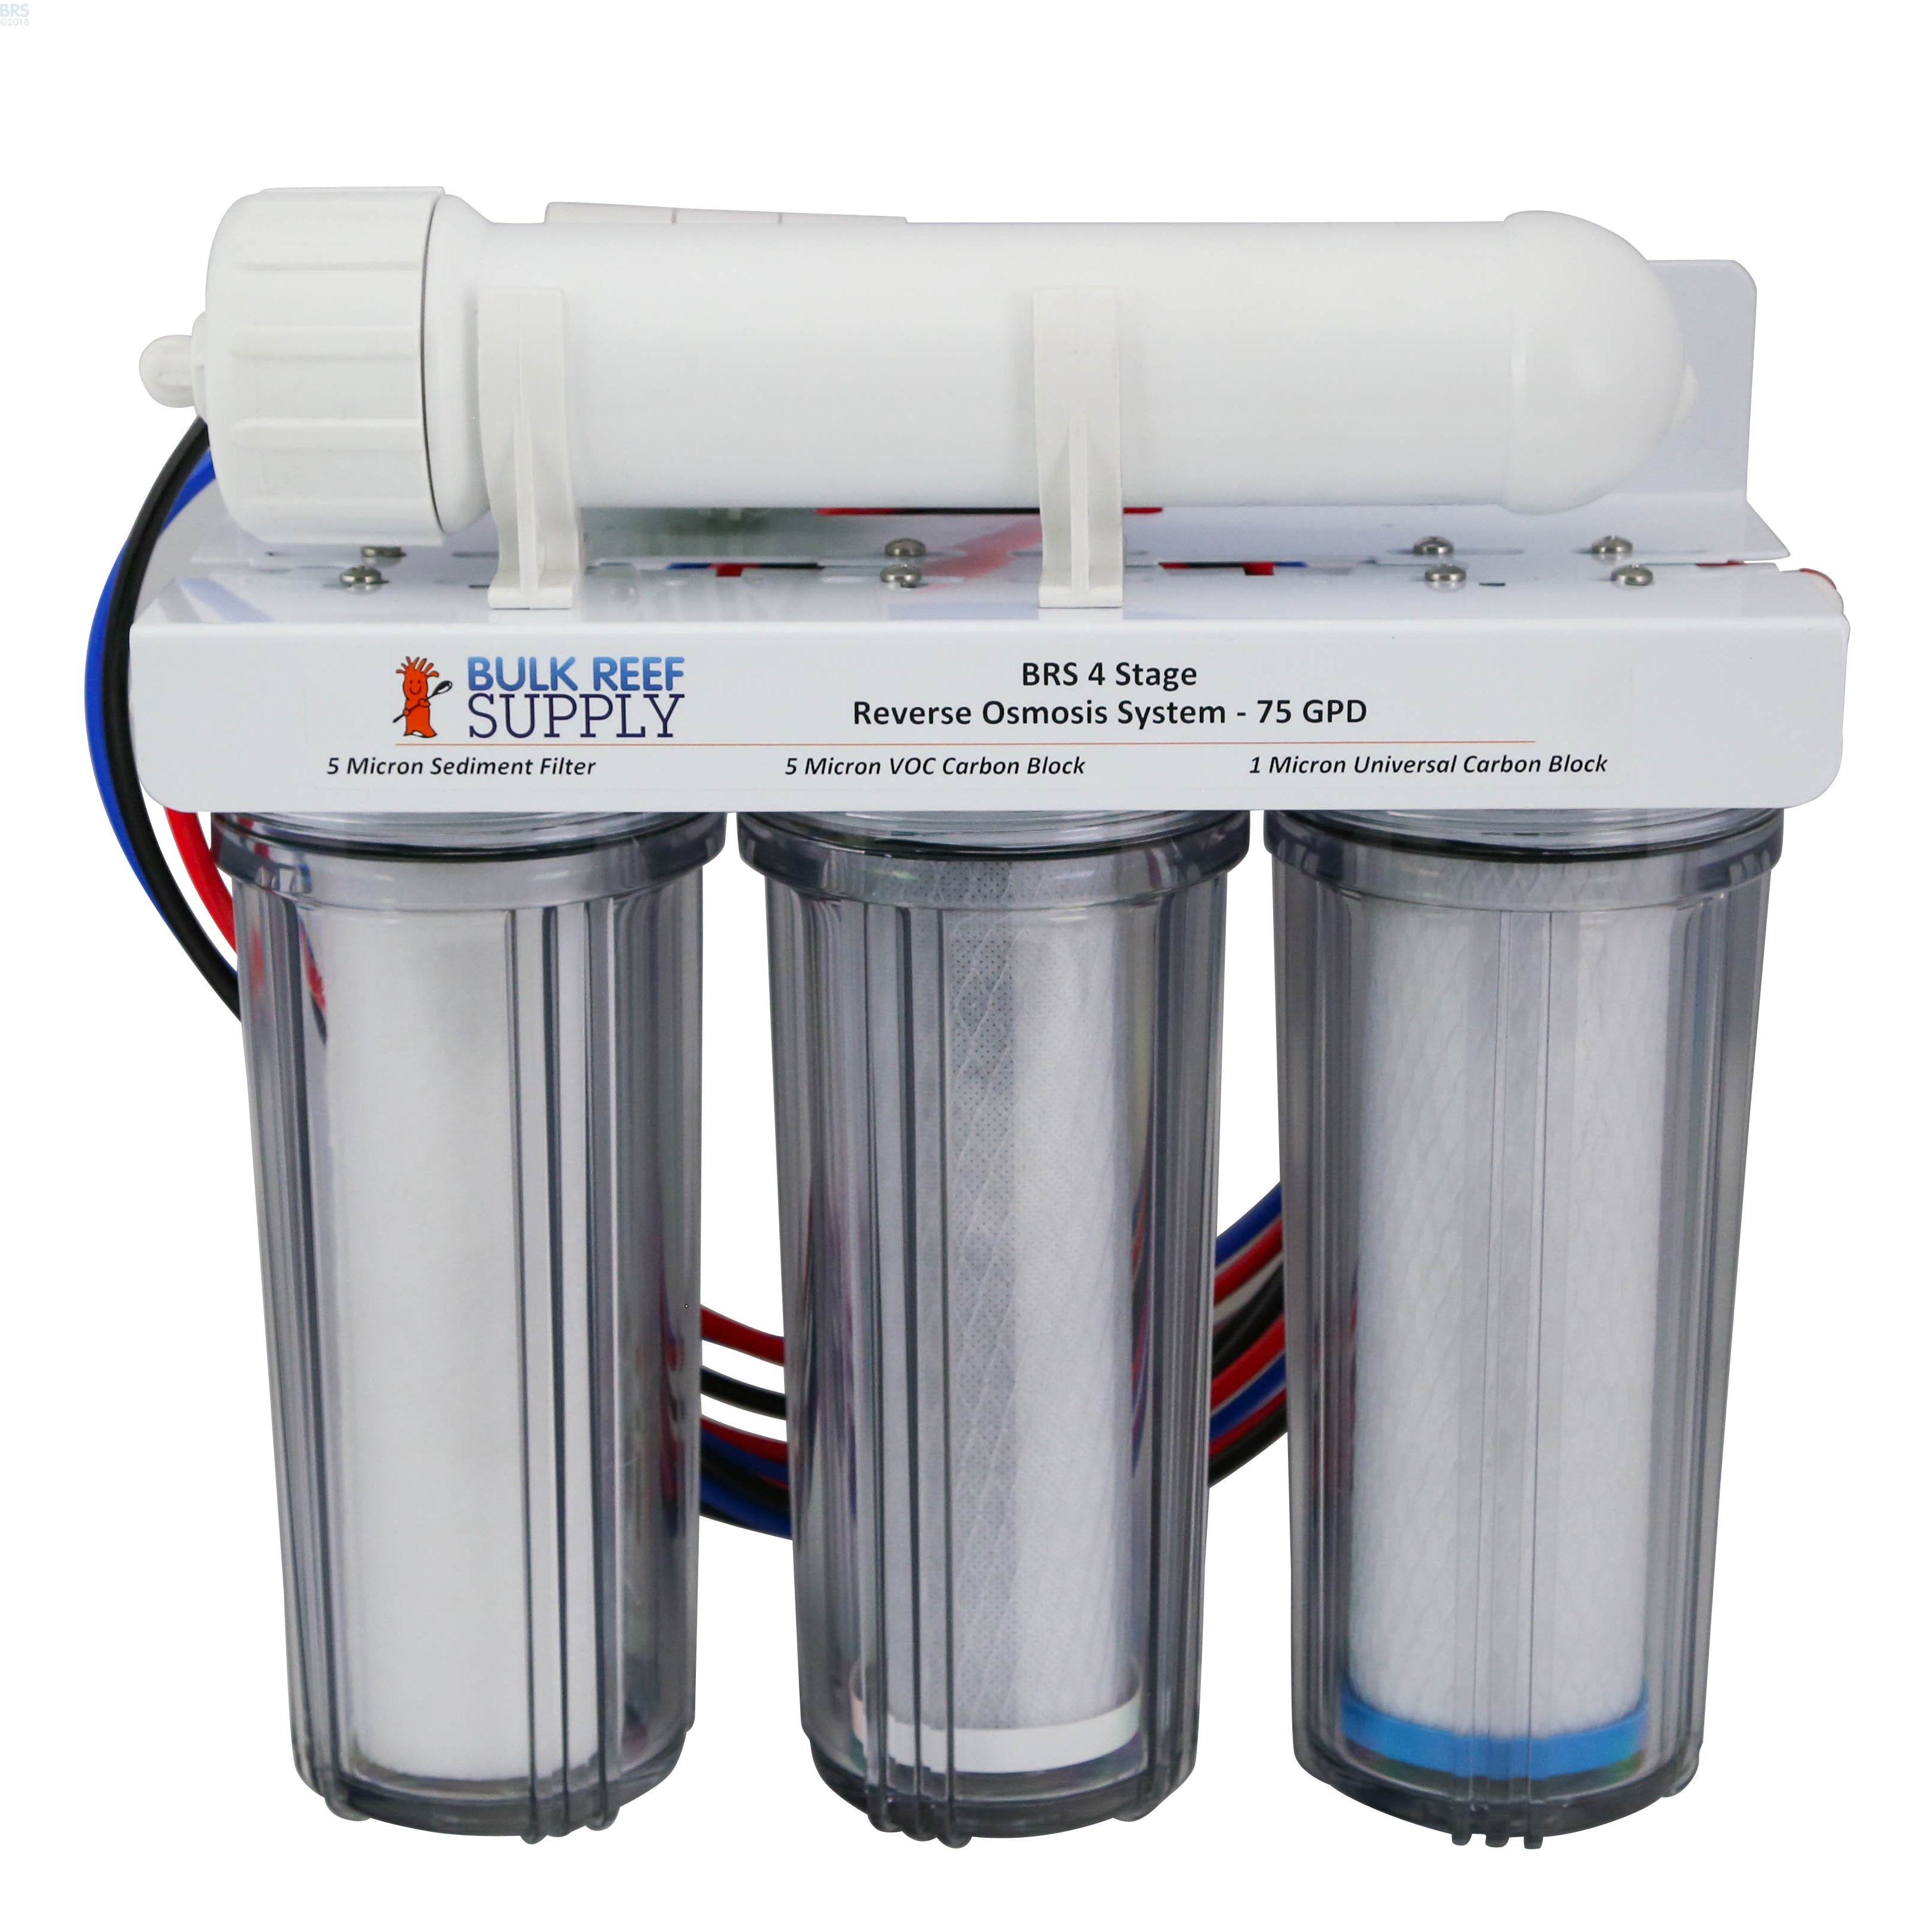 Brs 4 Stage Ro Only System 75gpd Bulk Reef Supply Nano Cartridge Filter Air Water 10